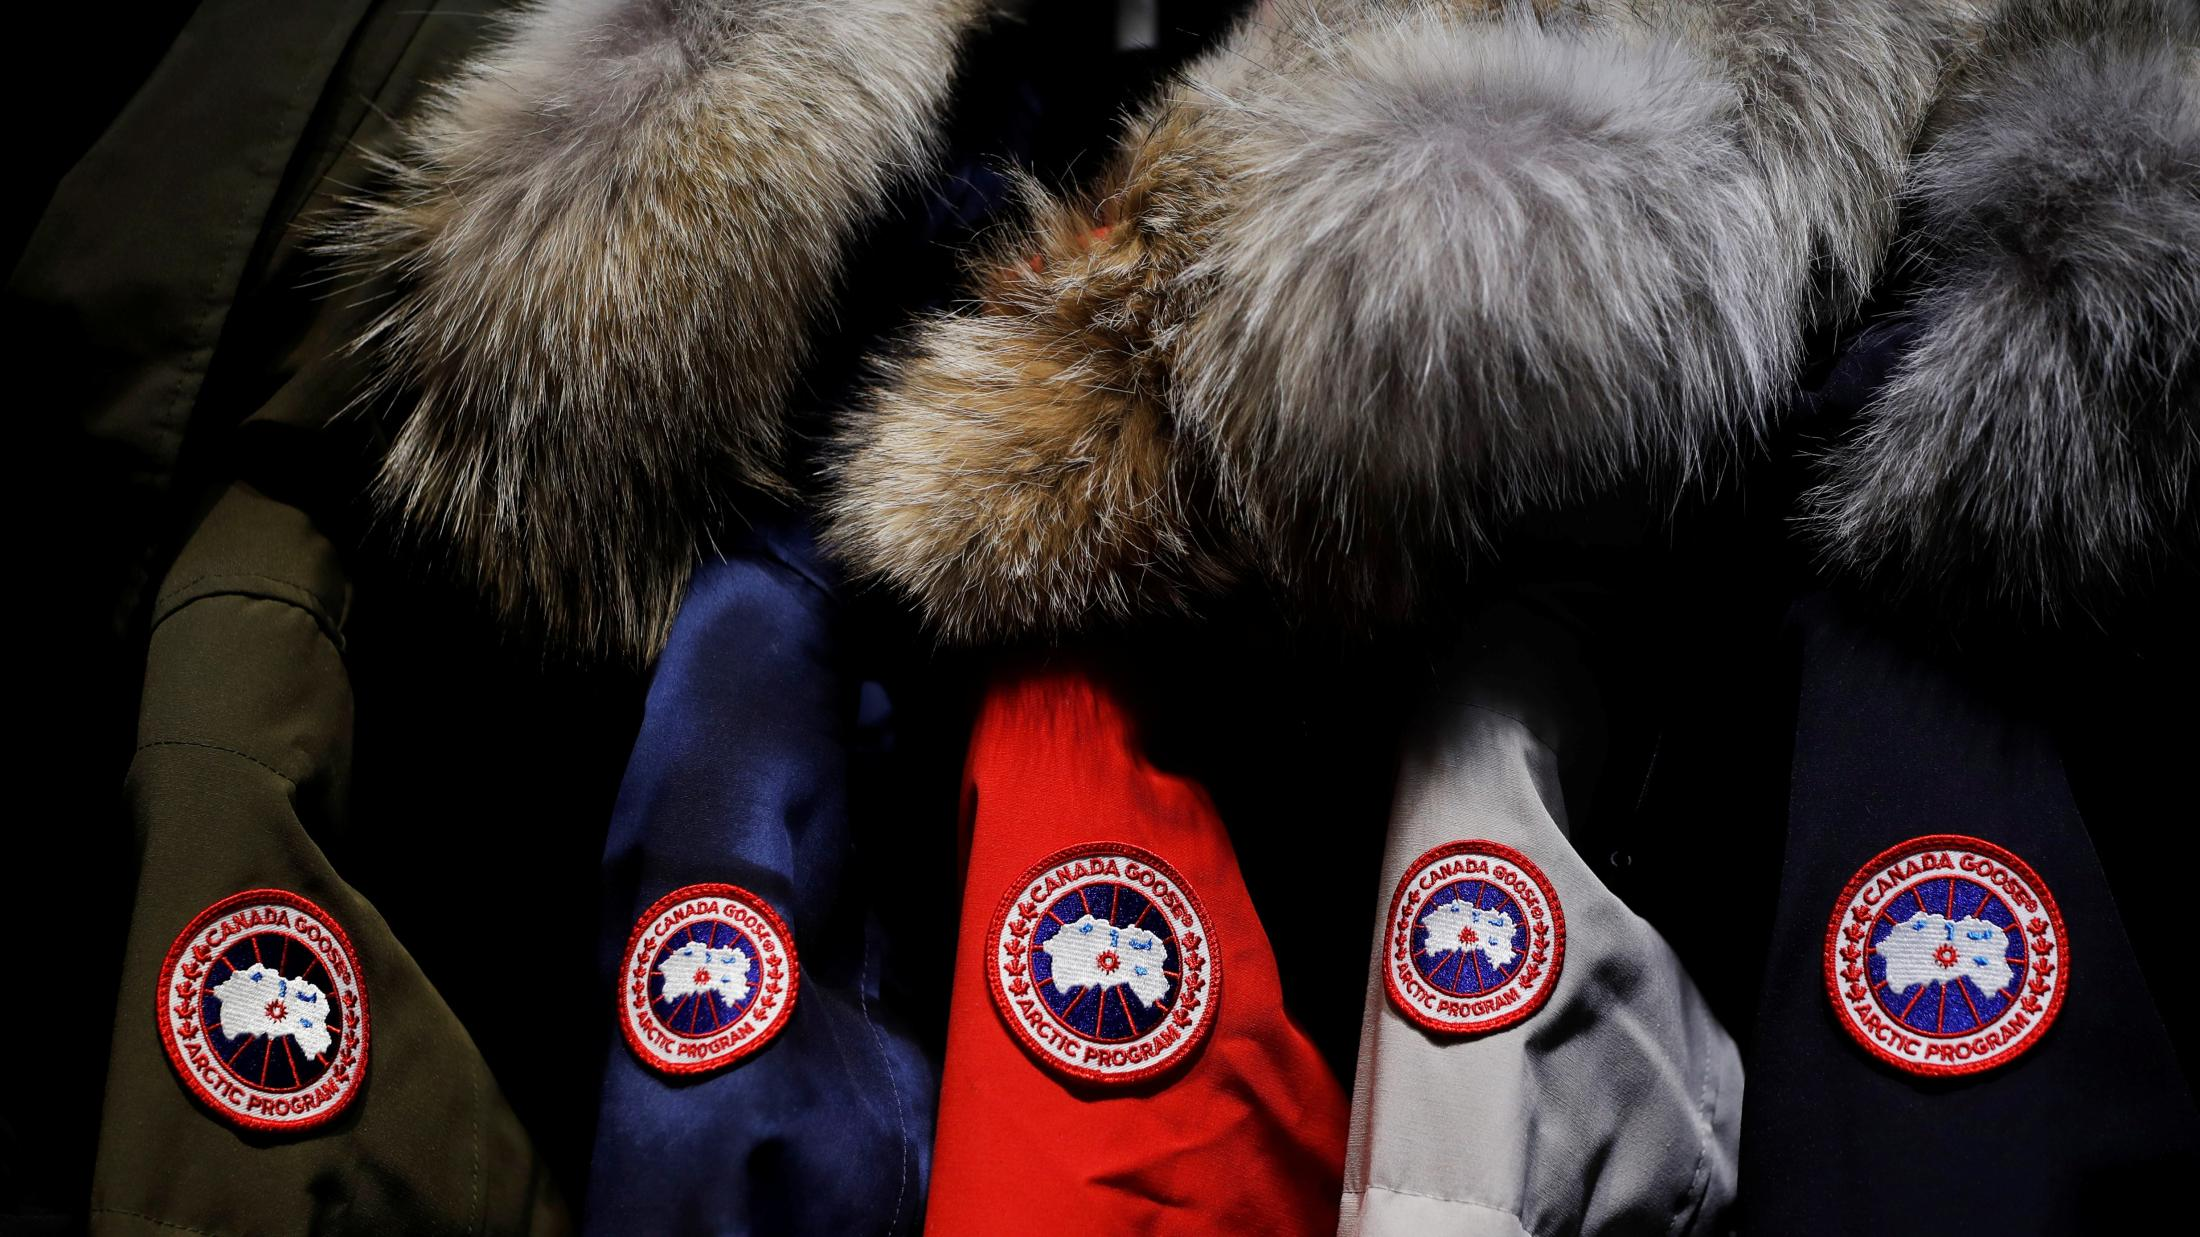 Canada Goose disputes claim its ethical sourcing was false advertising